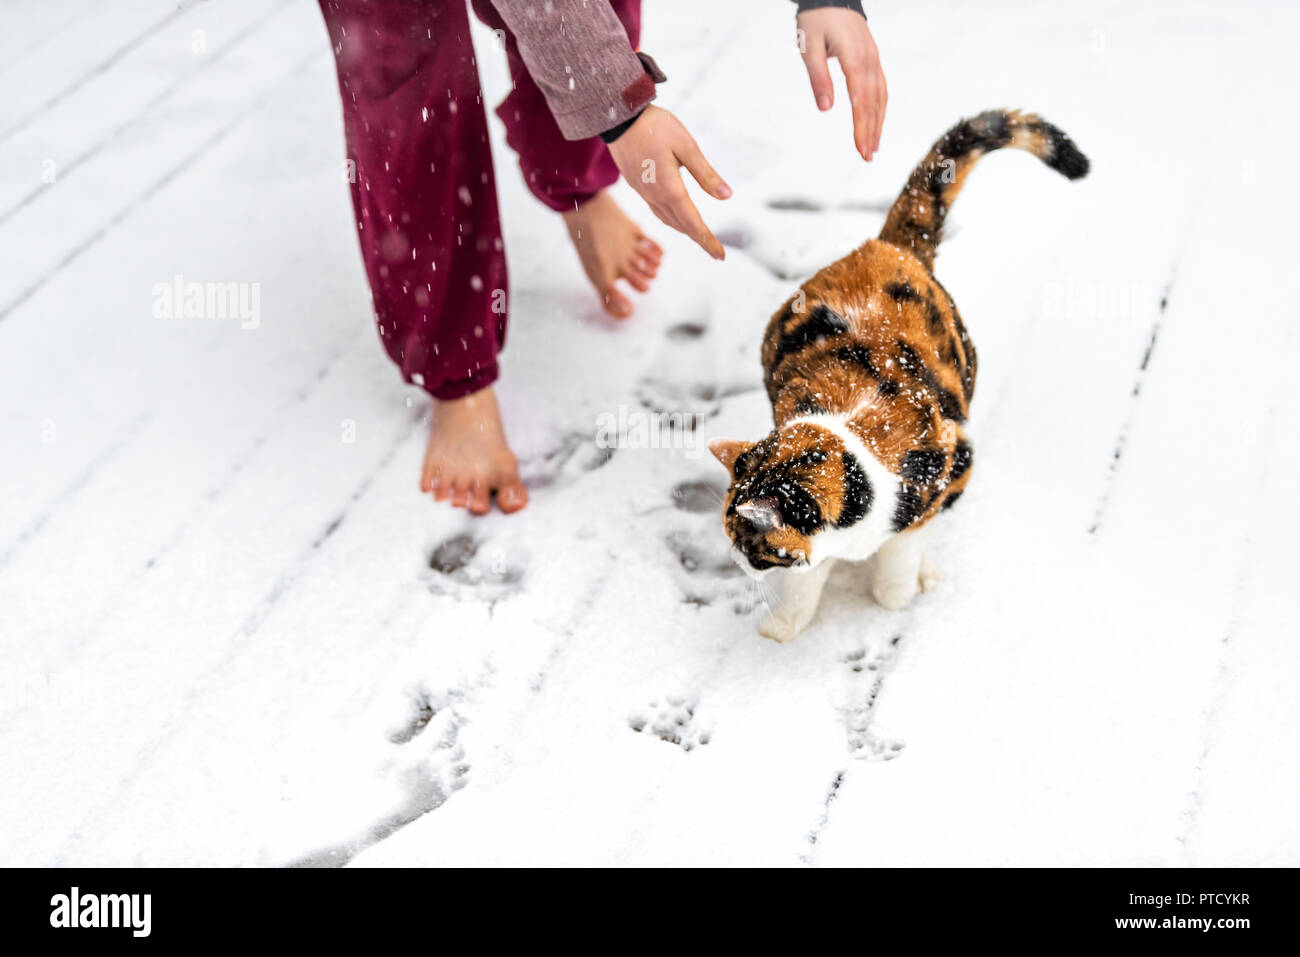 Young woman letting calico cat go from arms, hands outside, outdoors on house deck, in park in snow, snowing weather during snowstorm, storm with snow - Stock Image